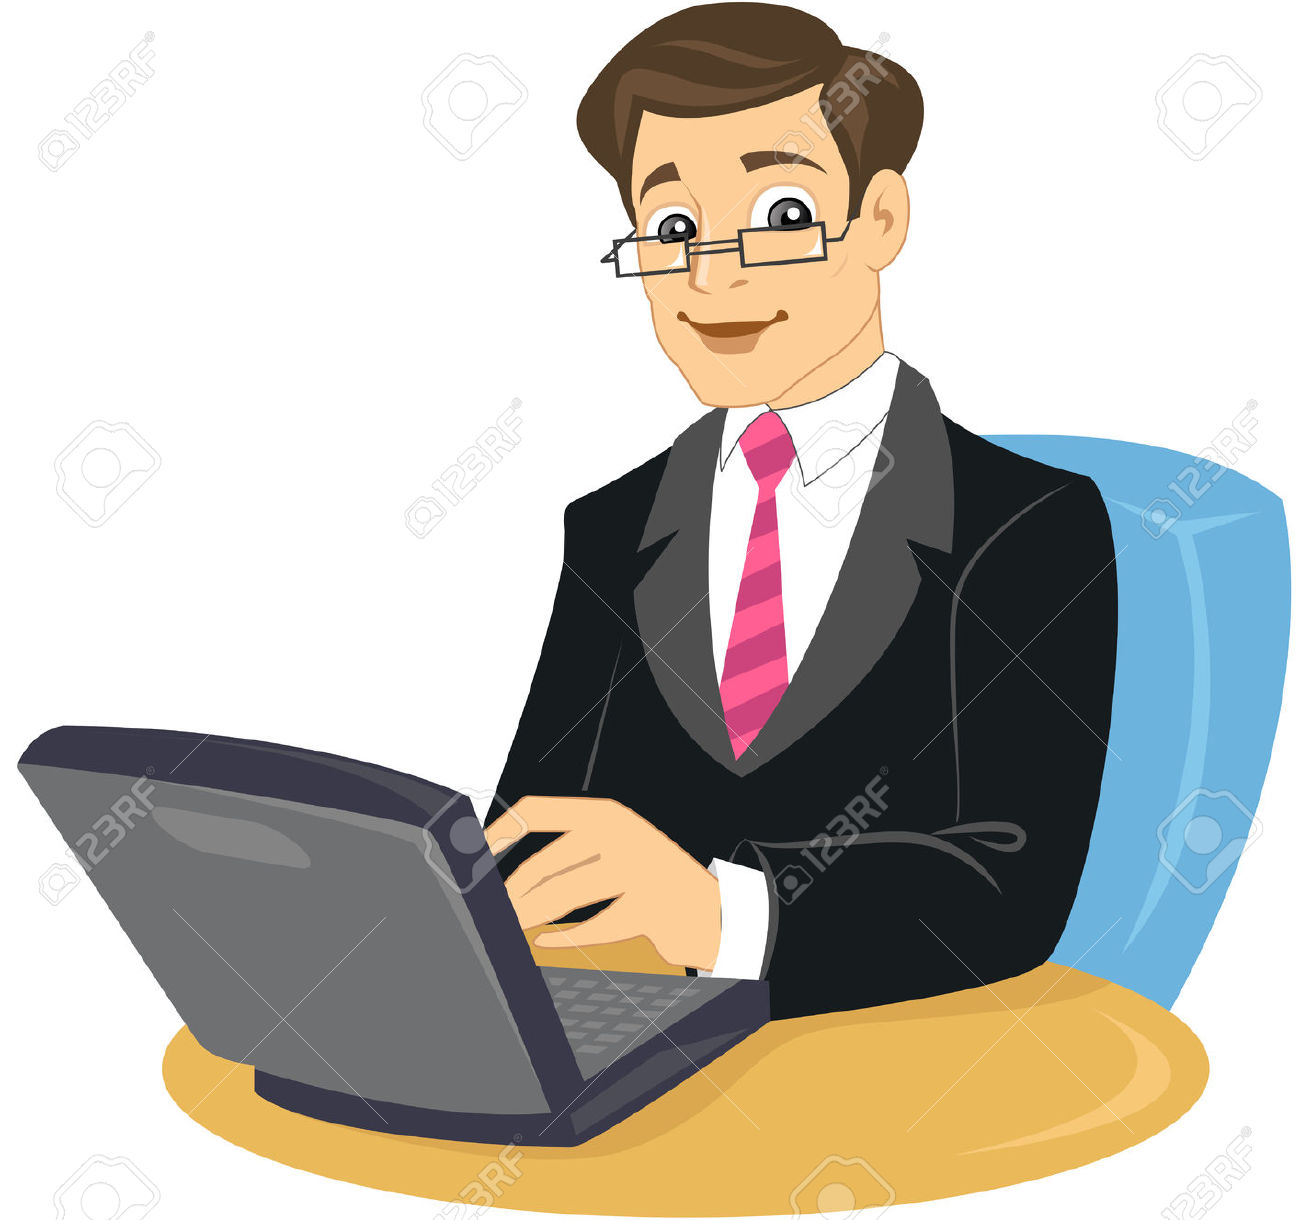 Man Working On Laptop Clipart.